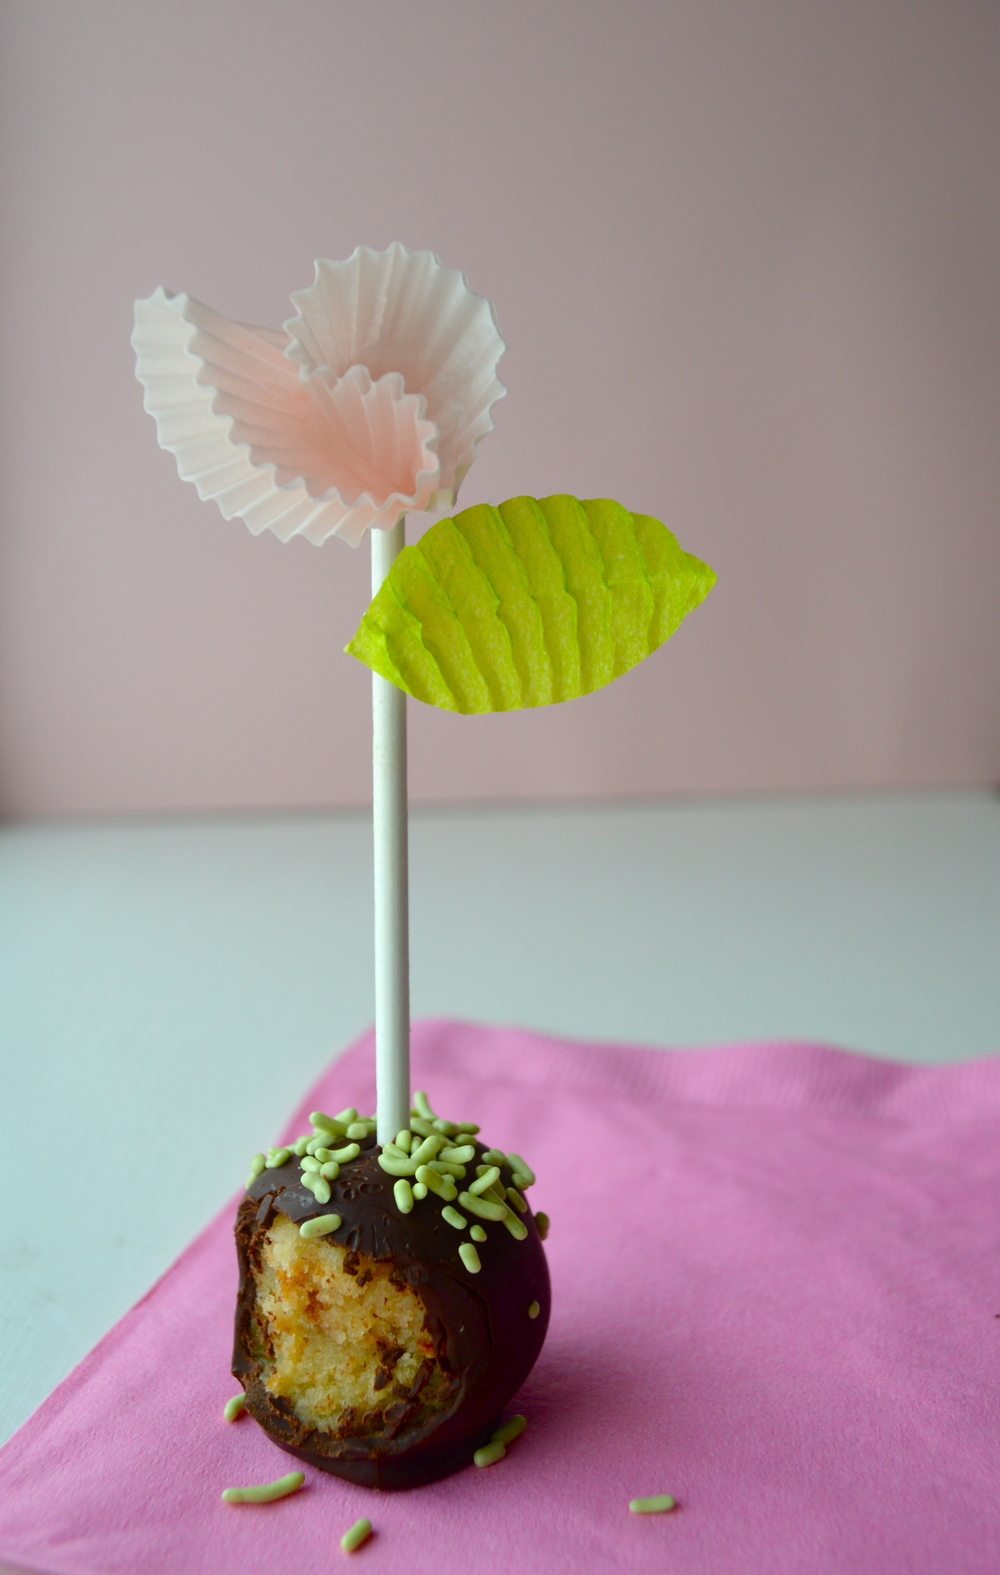 Cake-Pop-Flower-3-Super-Make-It